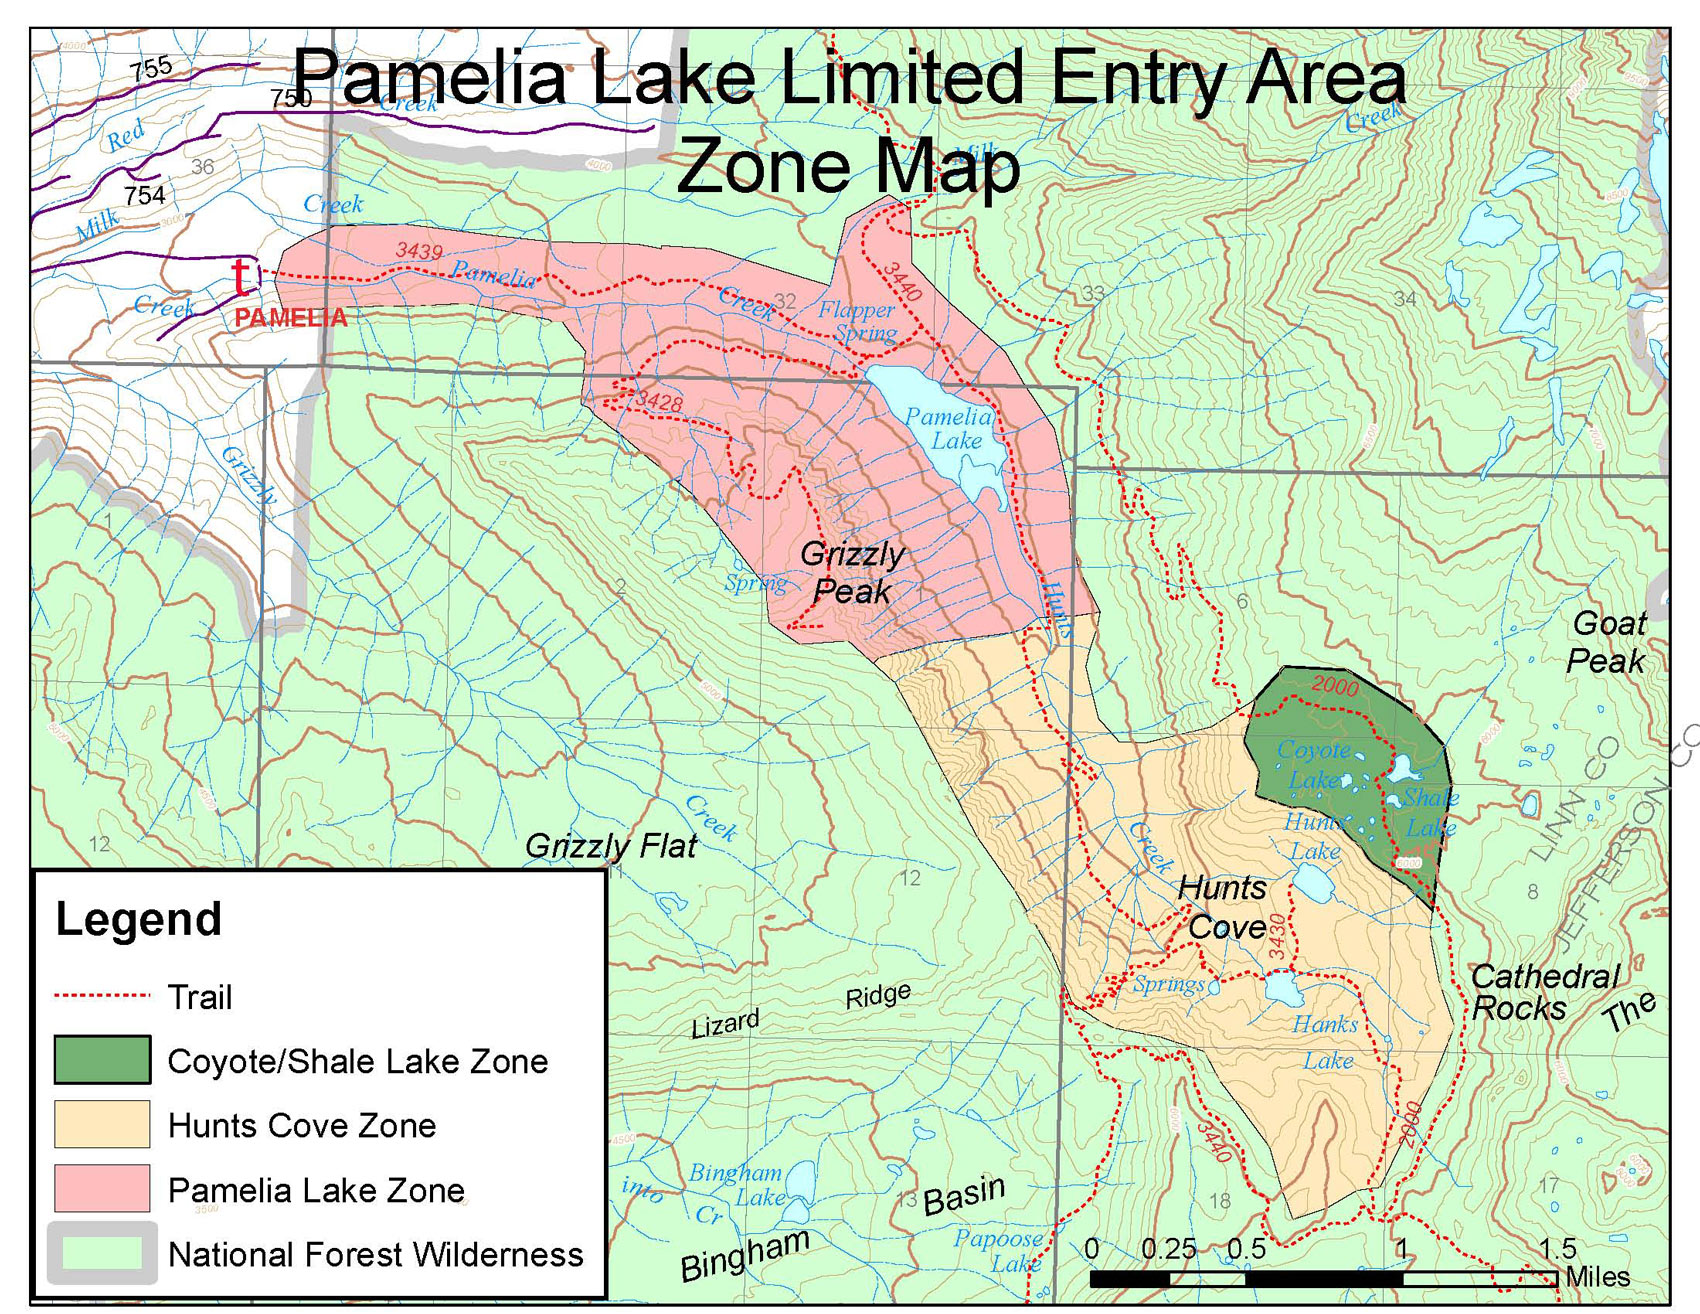 The Pacific Crest Trail passes through the green zone in the Pamelia Lake Limited Entry Area. You'll need a special permit to camp there.